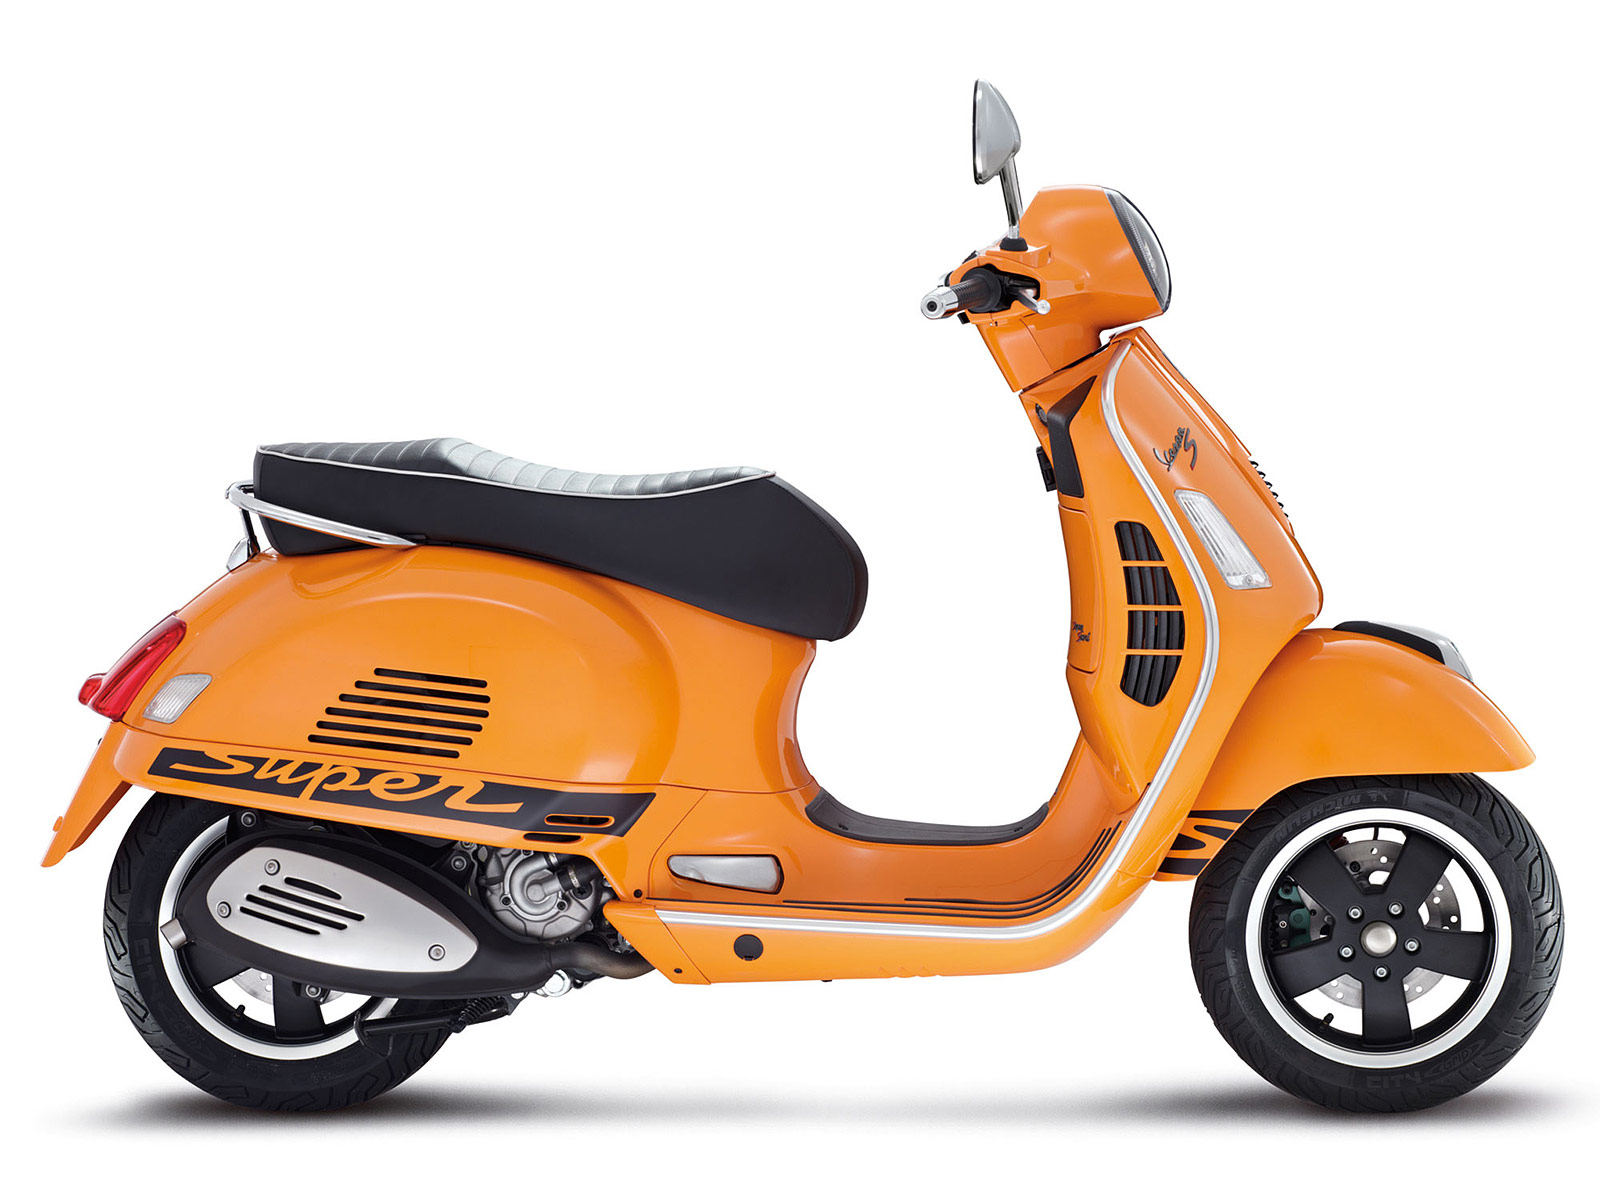 2012-vespa-gts-125-300-super-sport-scooter-pictures_4.jpg